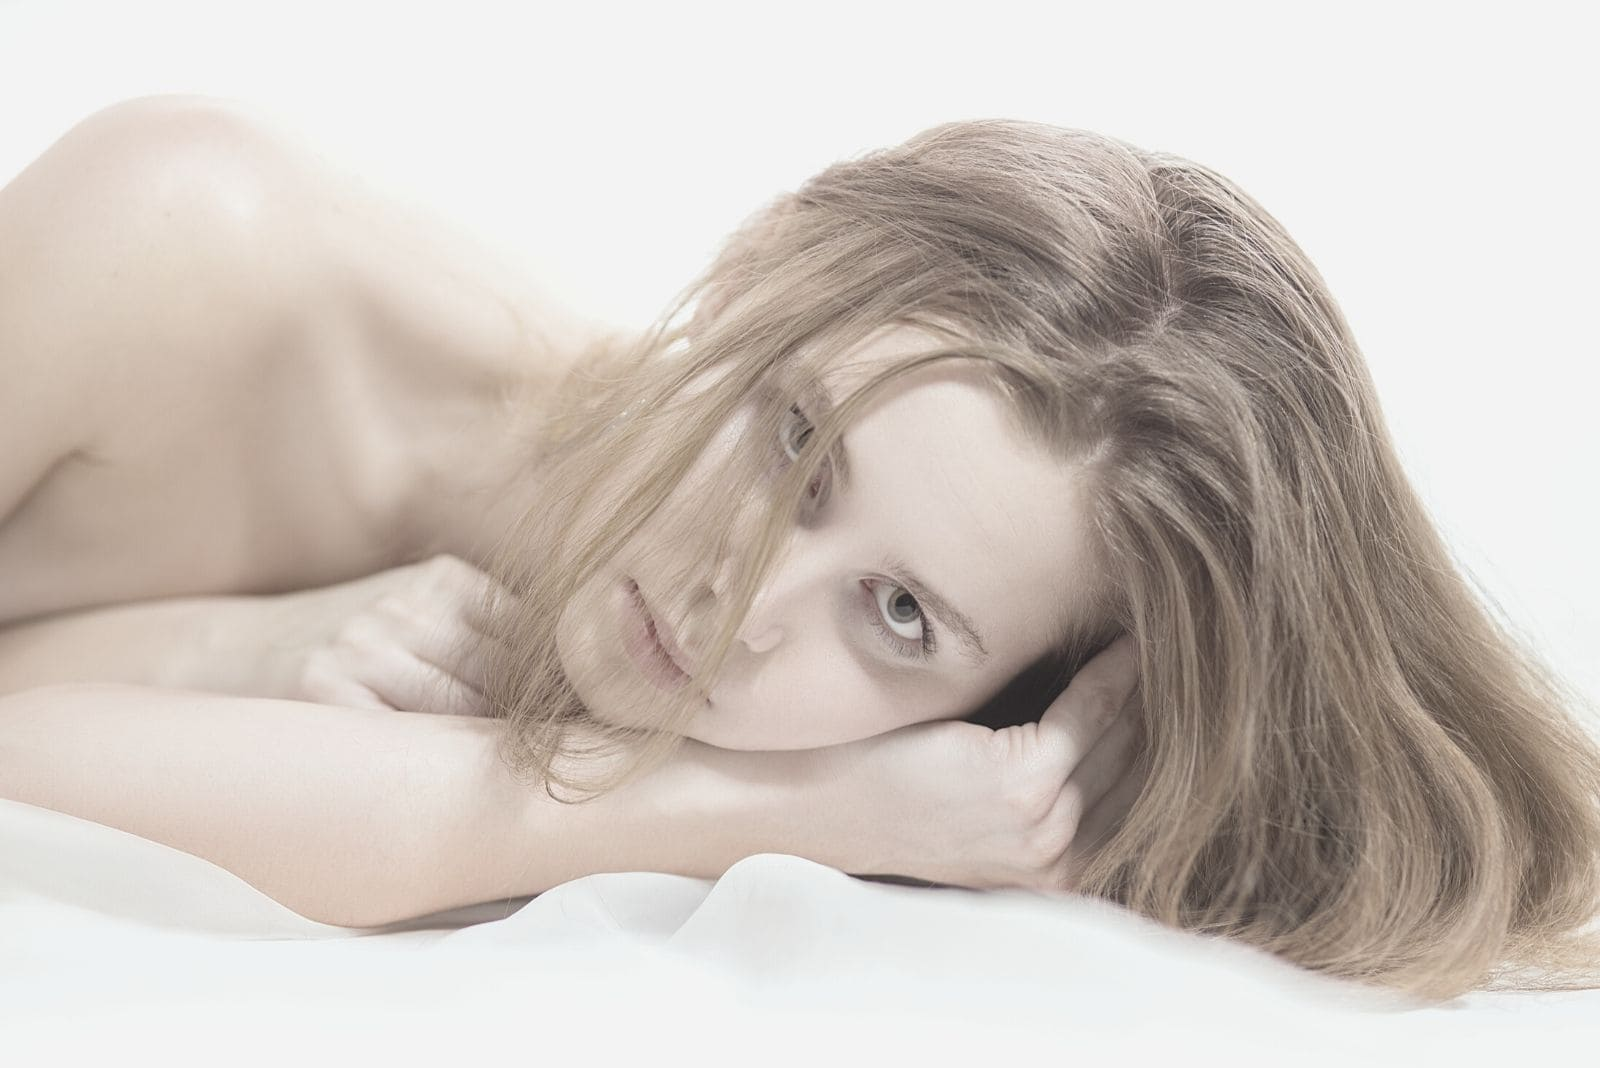 sad pensive pretty woman lying down on white linen bed looking at the camera naked in close up image